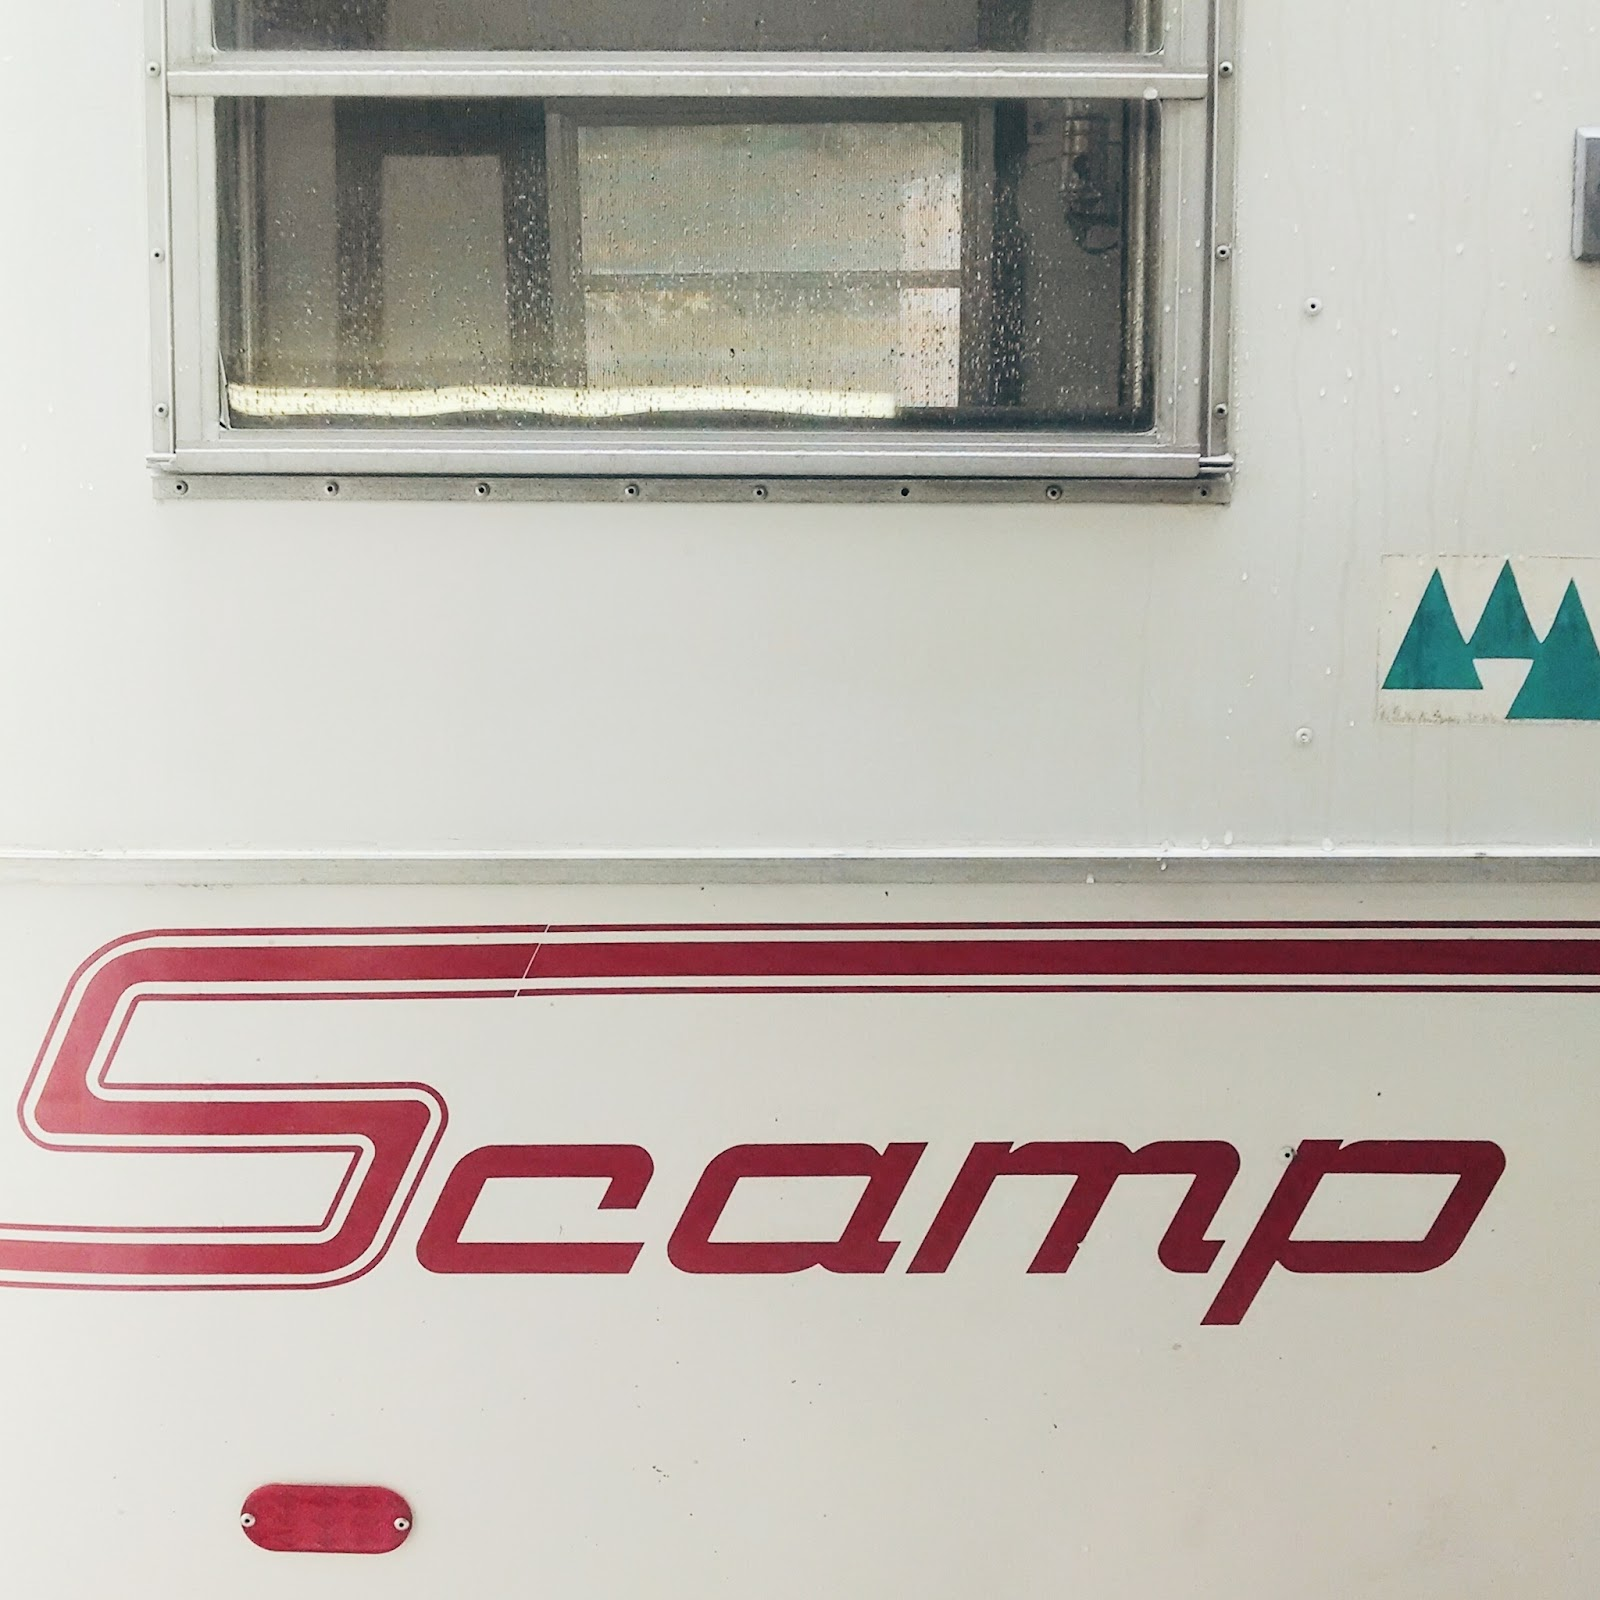 1975 Scamp Travel Trailer - littleladylittlecity.com